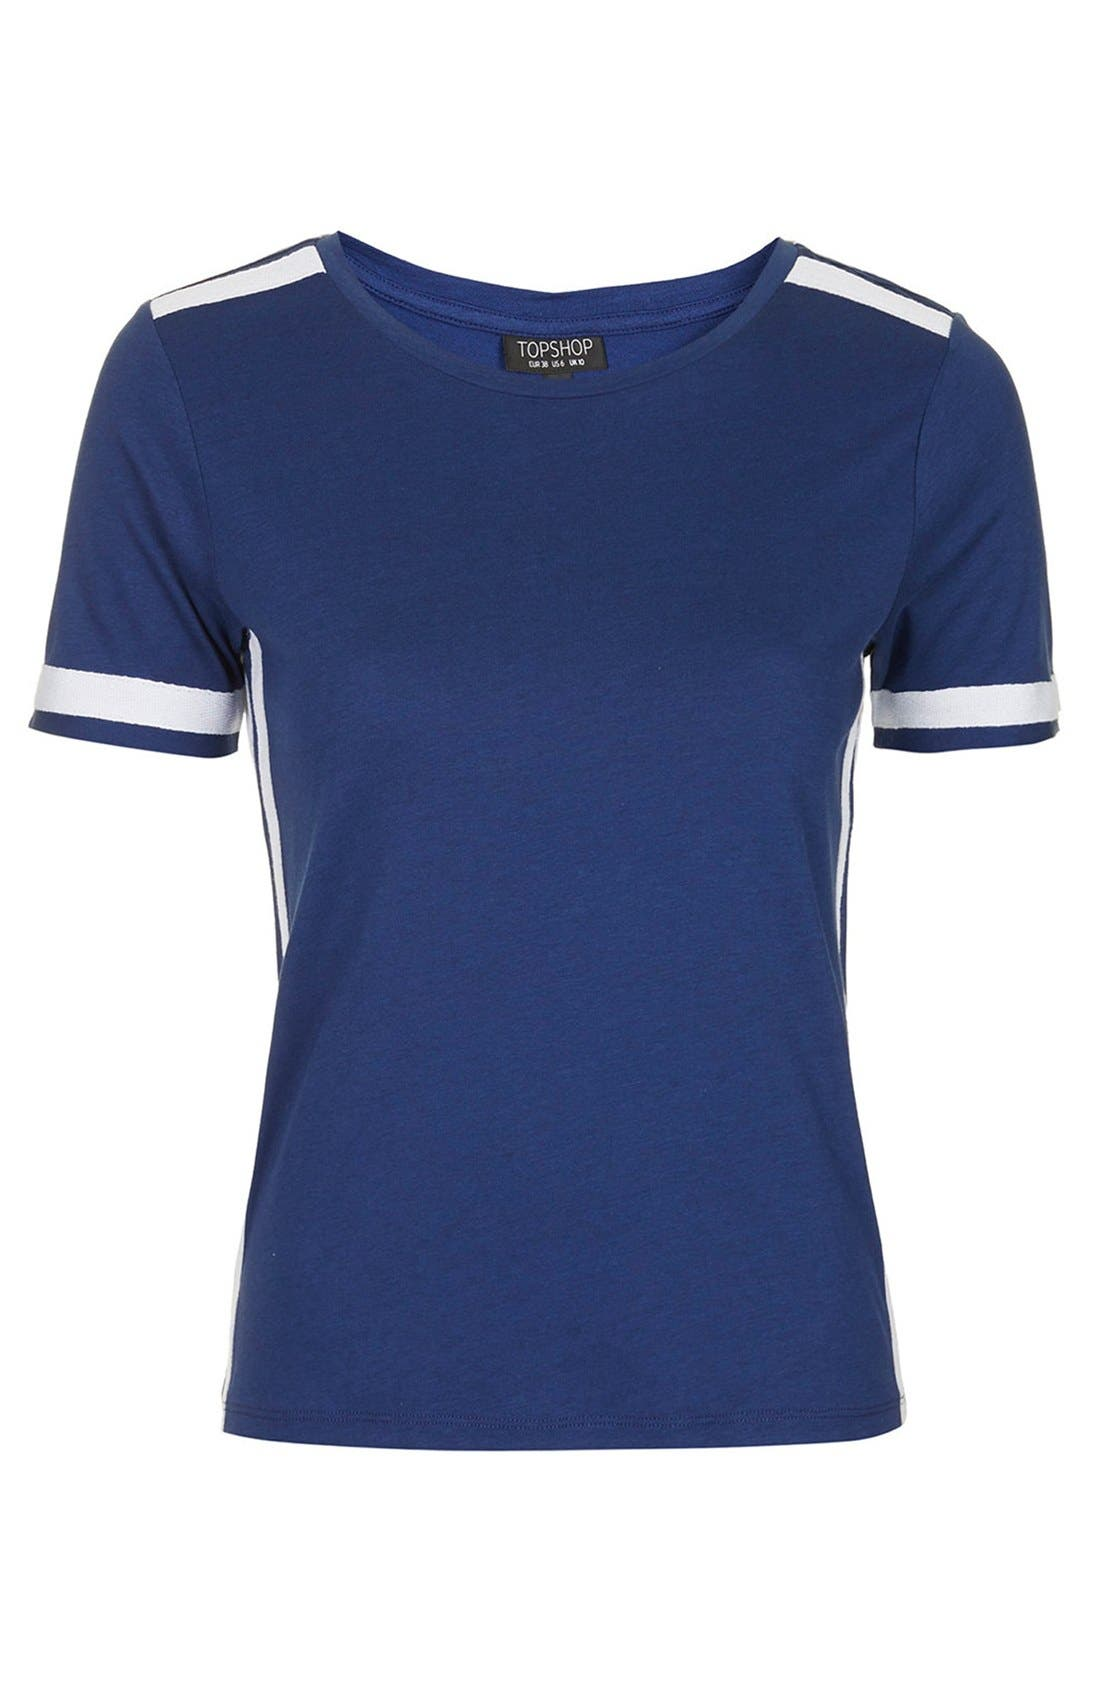 Alternate Image 3  - Topshop Grosgrain Trim Crewneck Tee